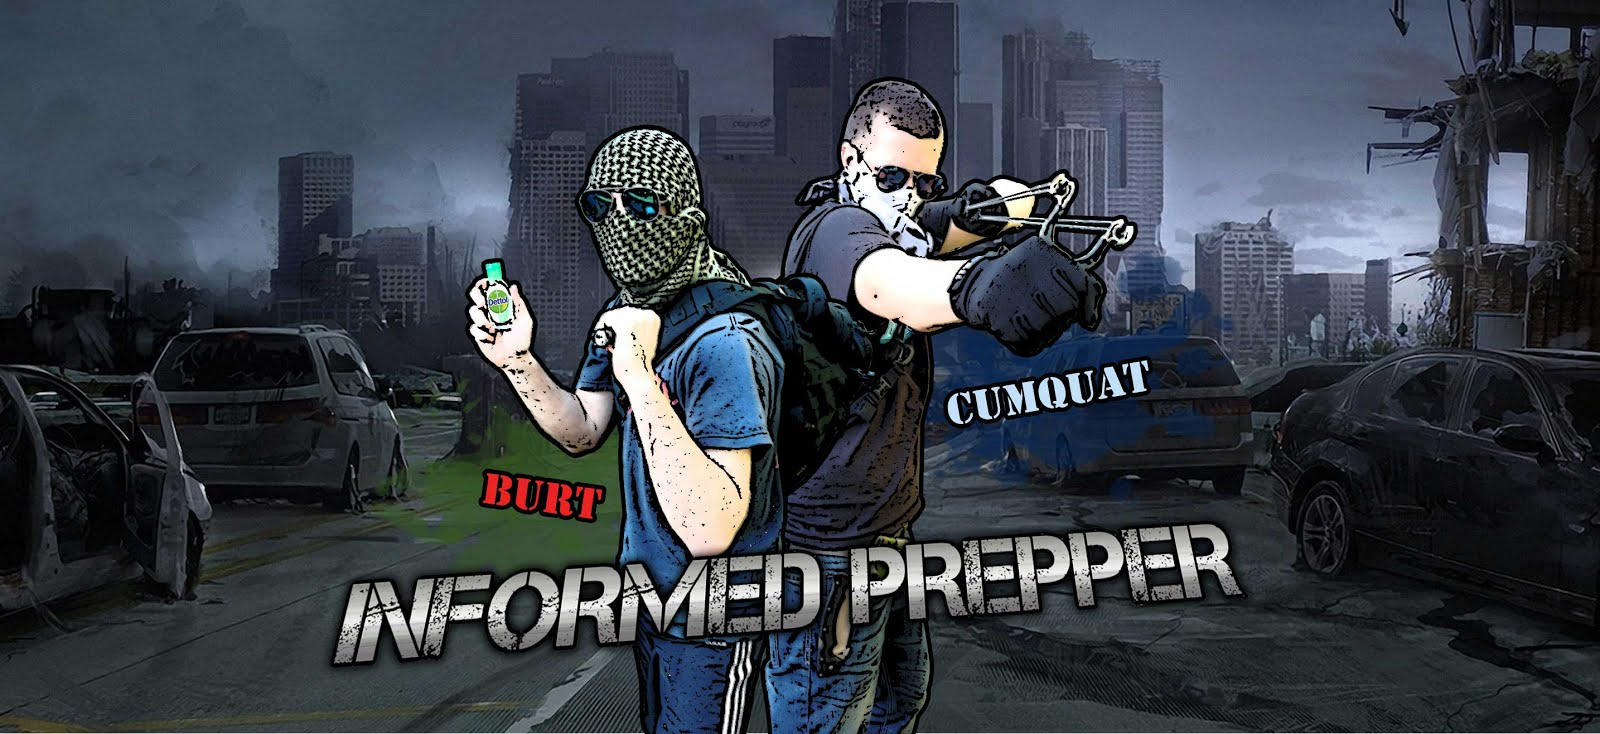 The Informed Prepper